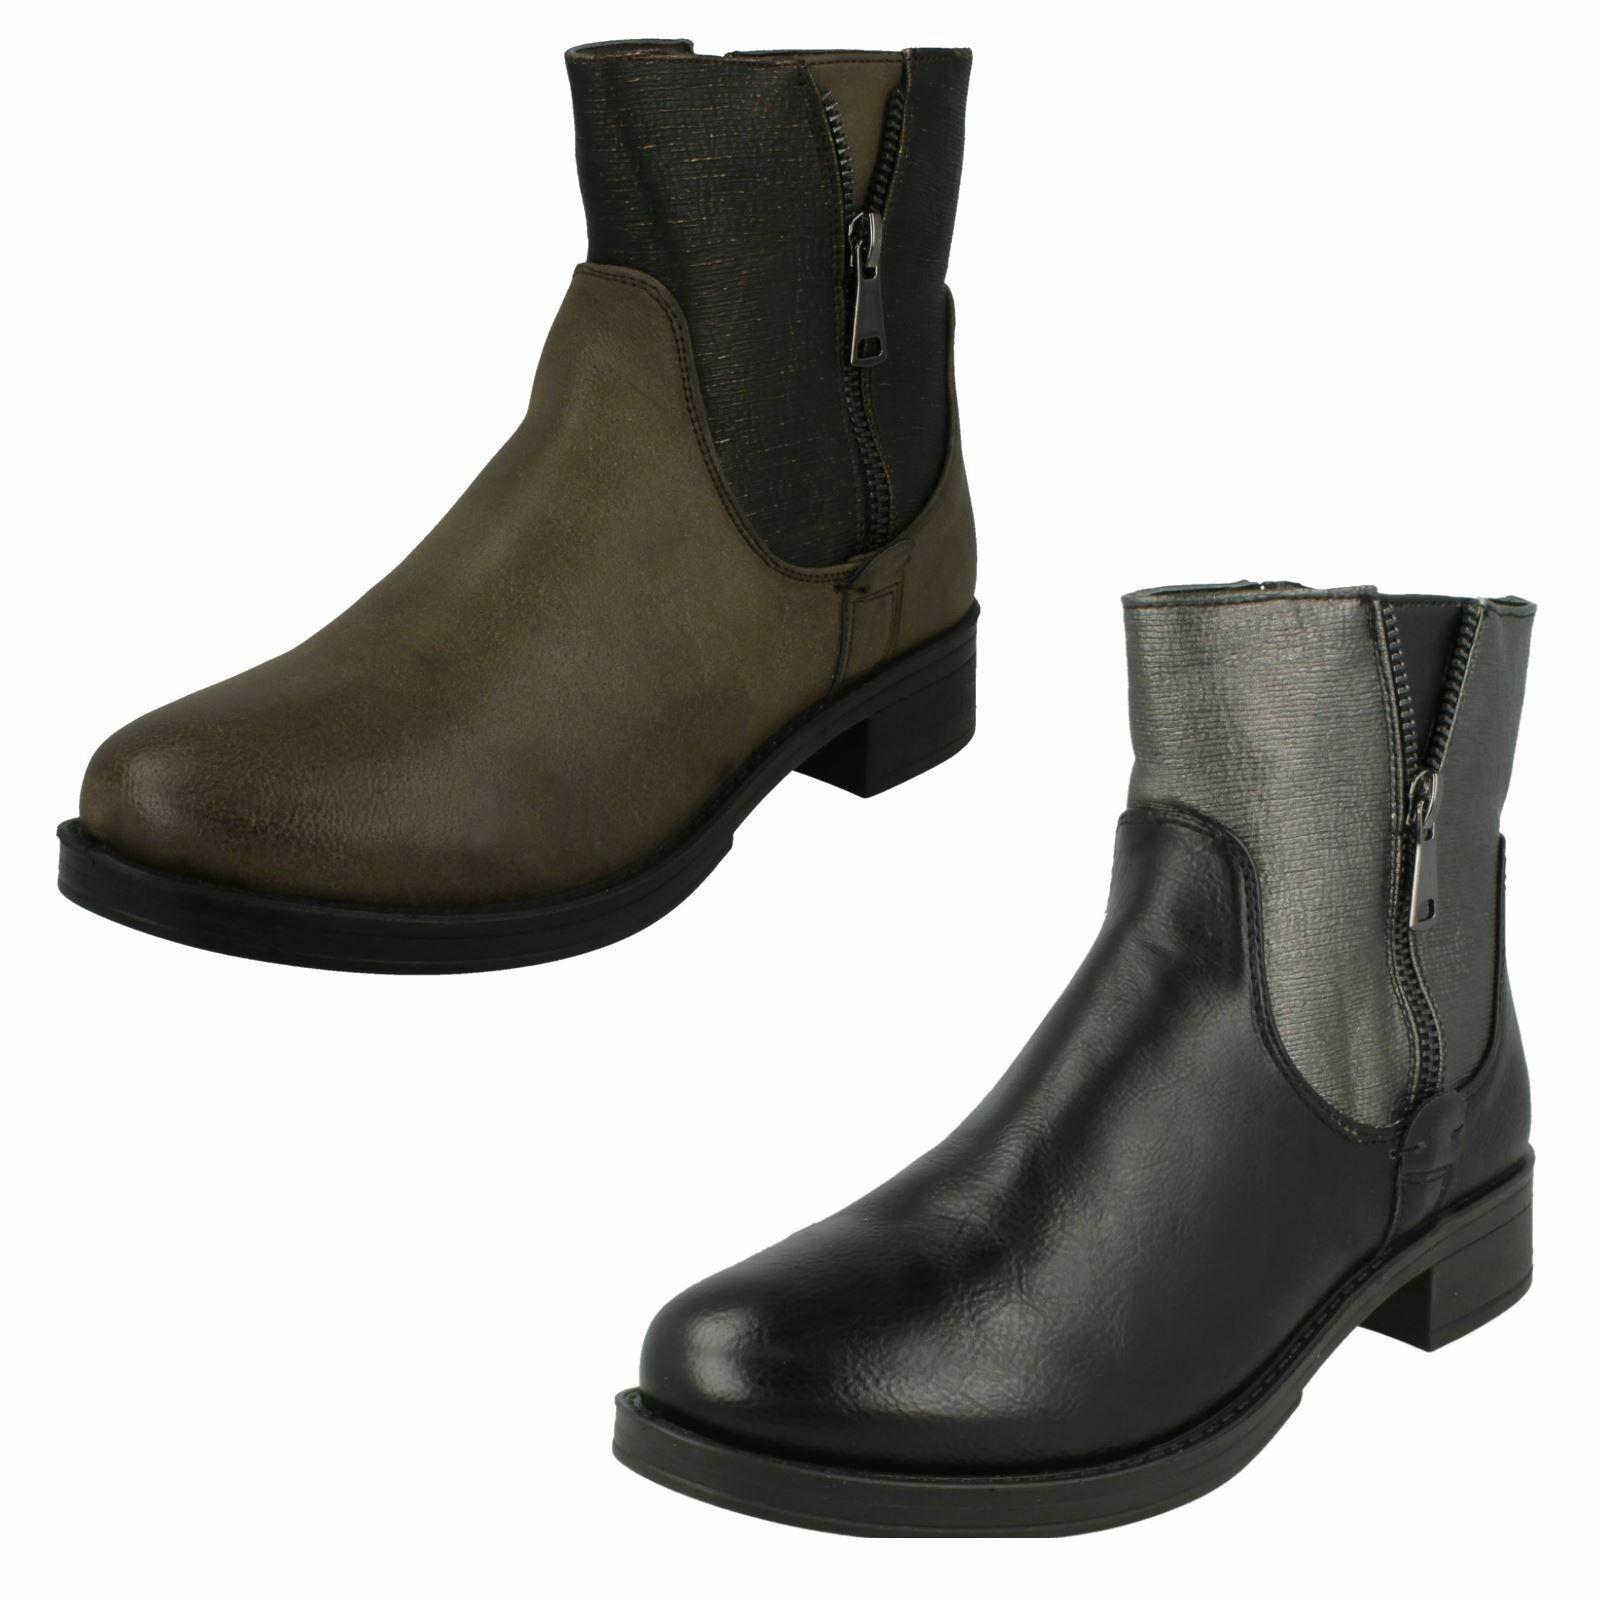 Ladies Black/Brown Spot On Ankle Boots F50704